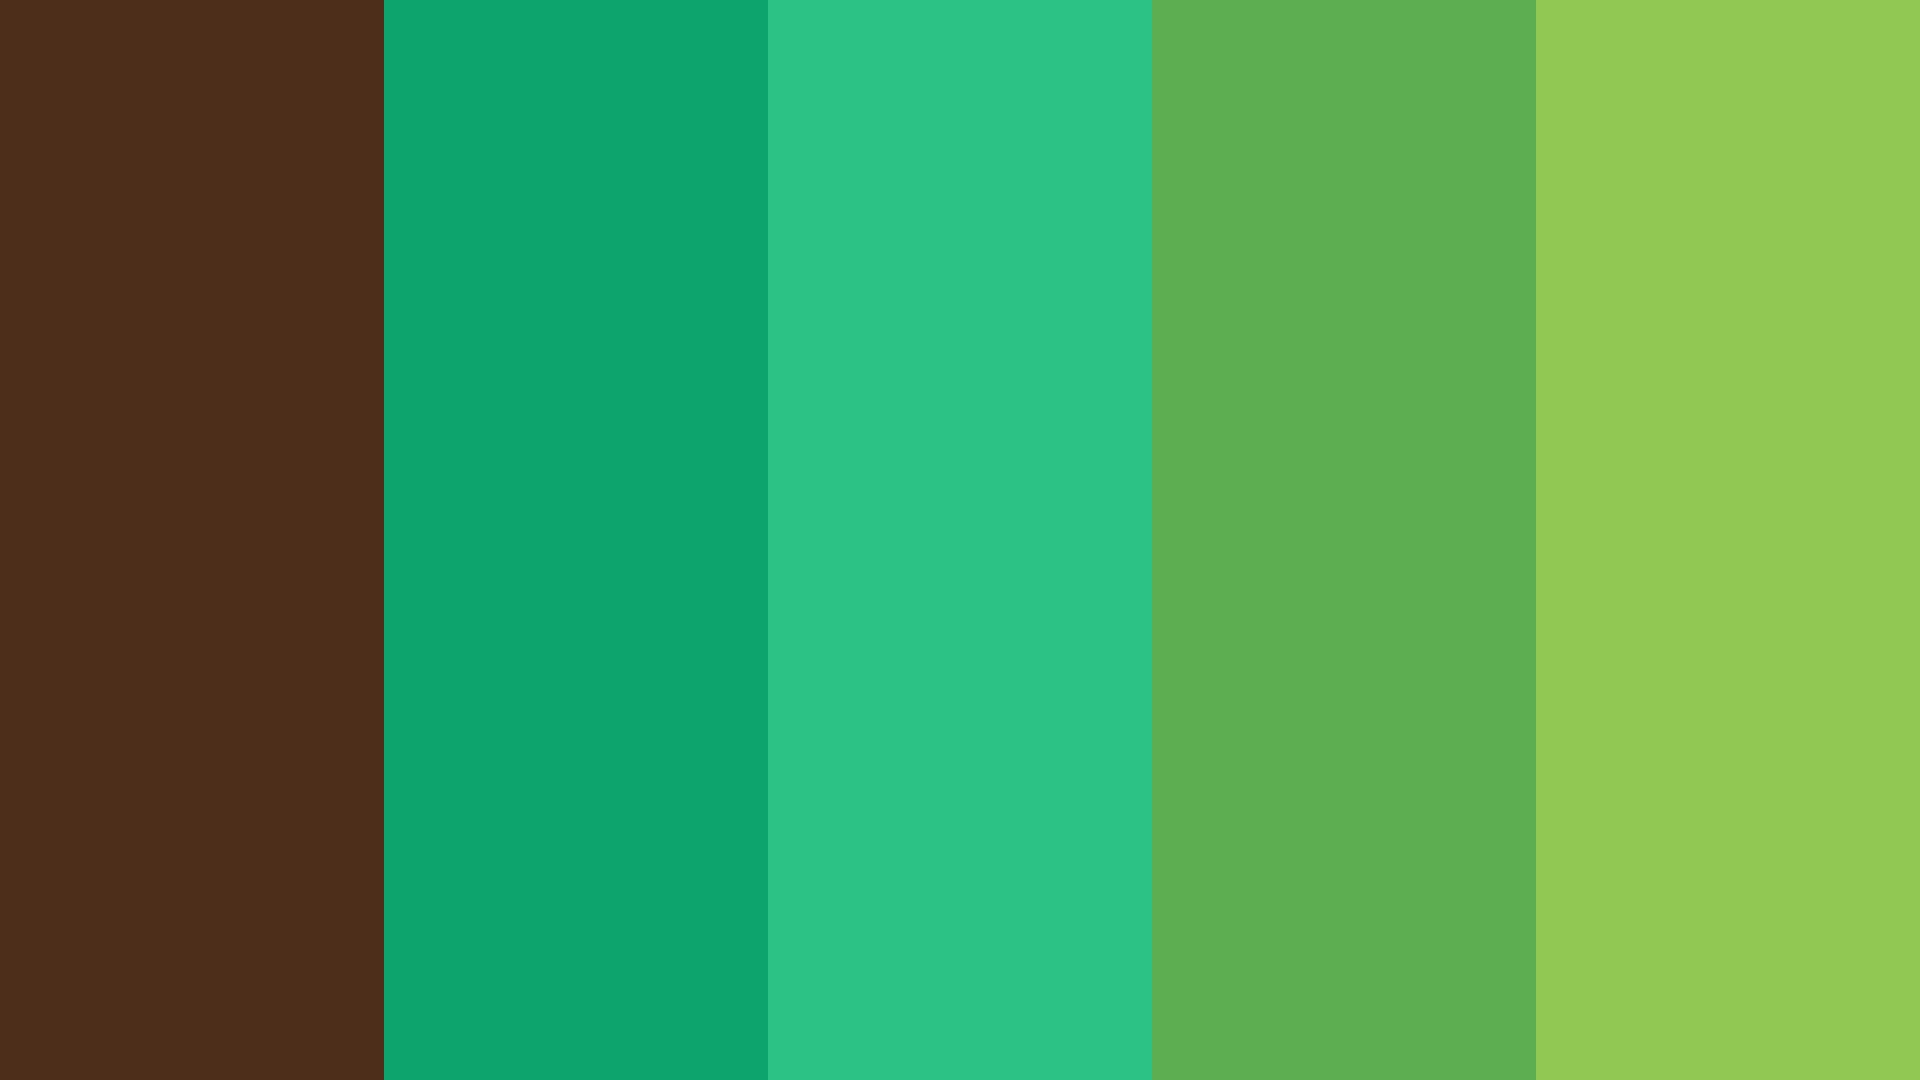 Greenery Illustration Color Palette